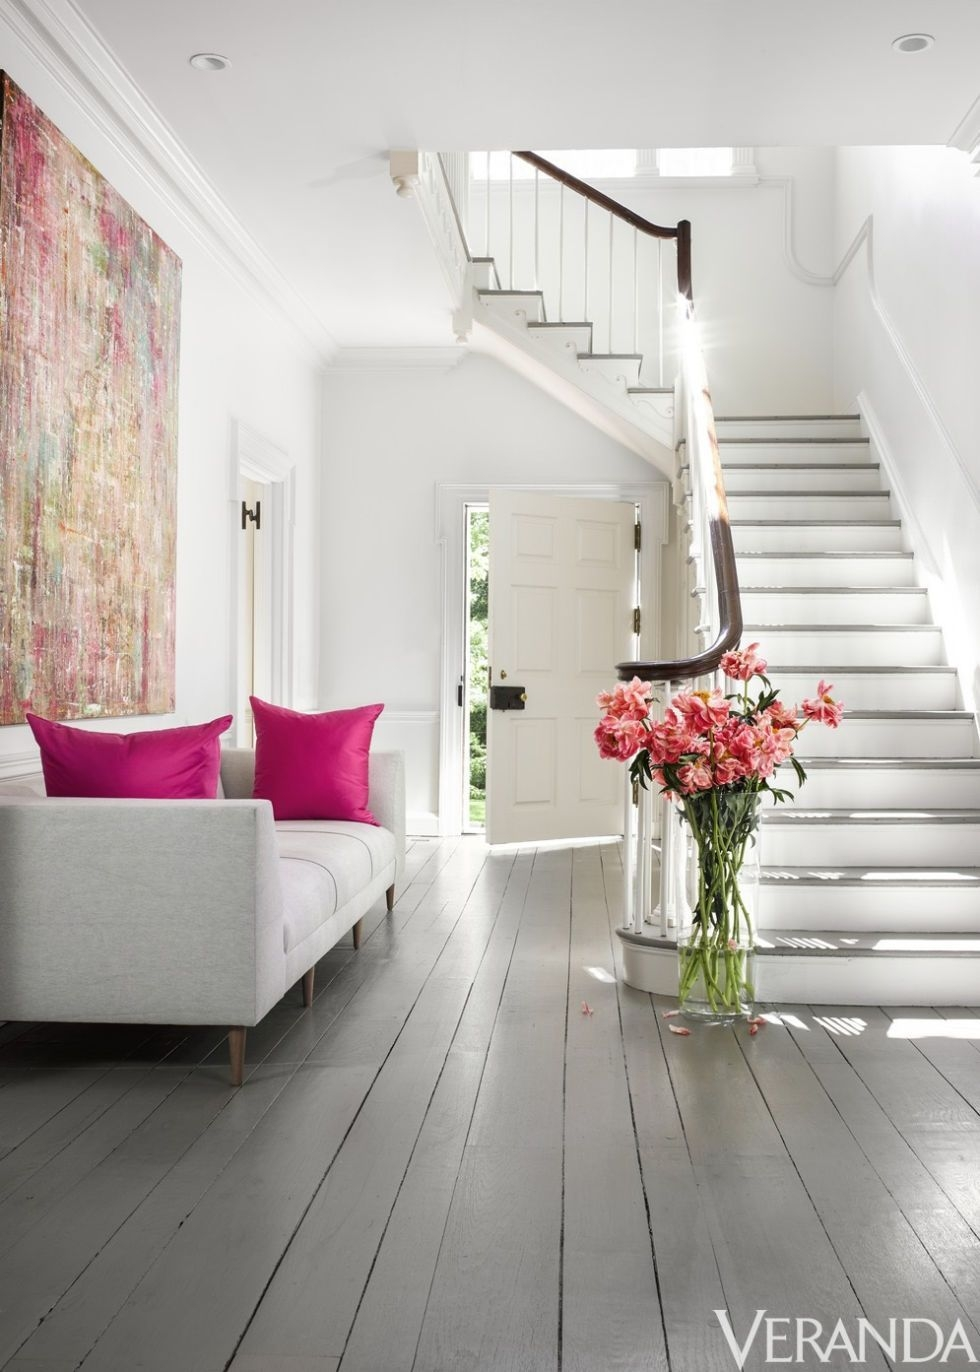 36 Stunning Staircases Ideas Gorgeous Staircase Home Designs   Modern Living Room With Stairs   Stylish   House   Mansion   Dining Room   Sleek Modern